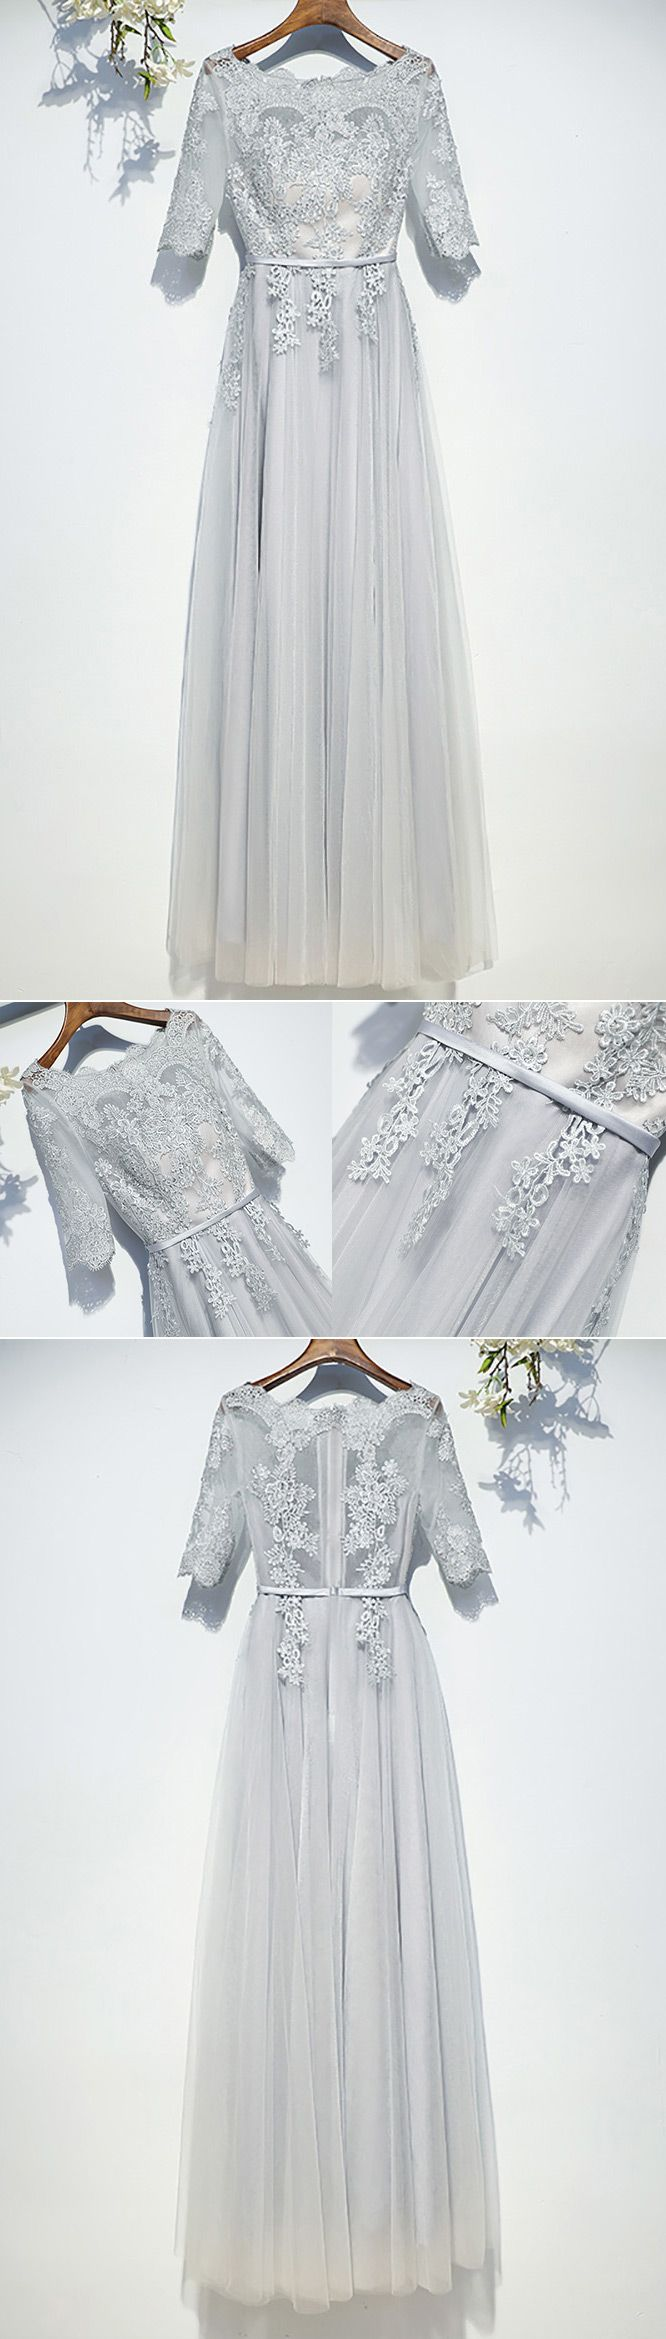 Classy silver flowy long tulle prom dress with short sleeves